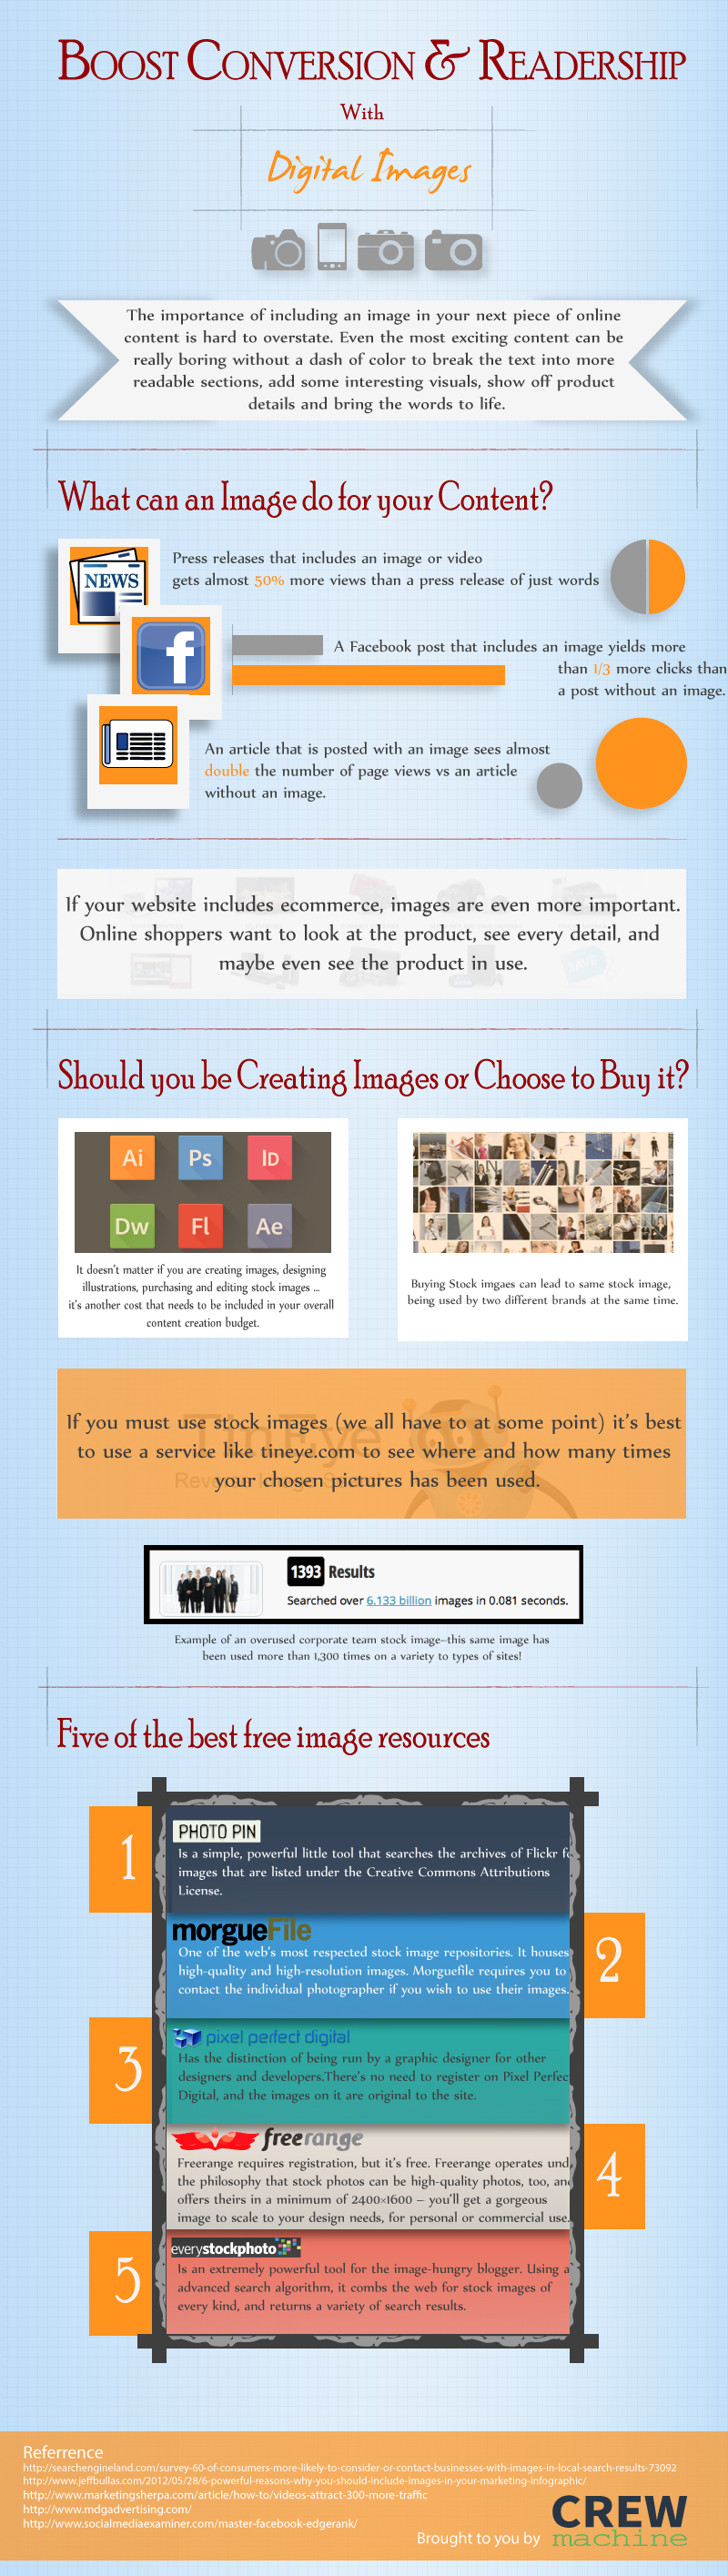 Boost Conversion and Readership With Digital Images